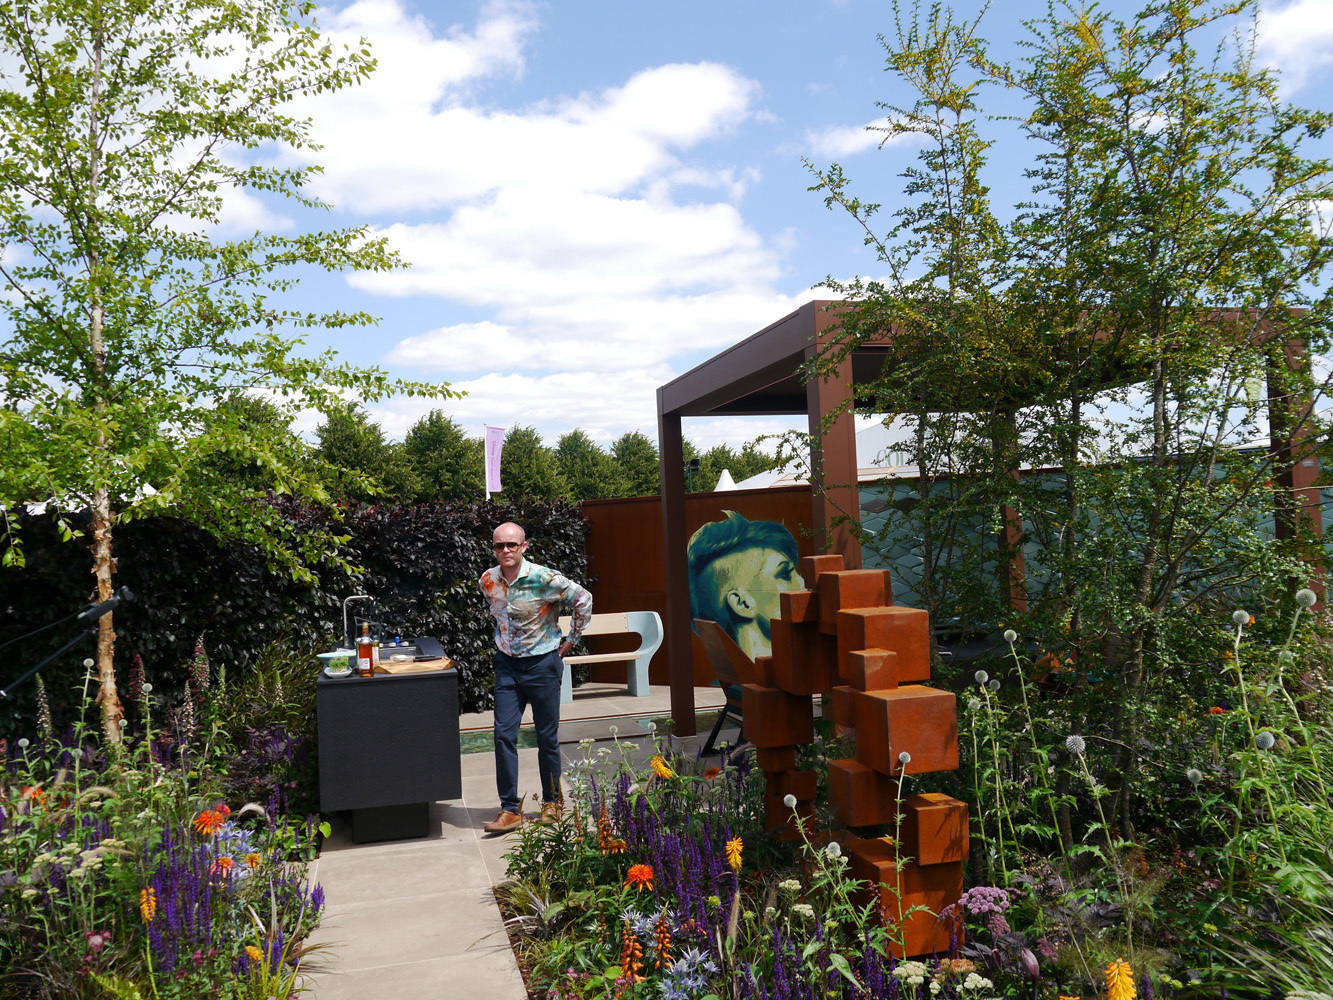 Lower Barn Farm S In House Design Robert Grimstead Designs Show Garden Rhs Hampton Ced Ltd For All Your Natural Stone